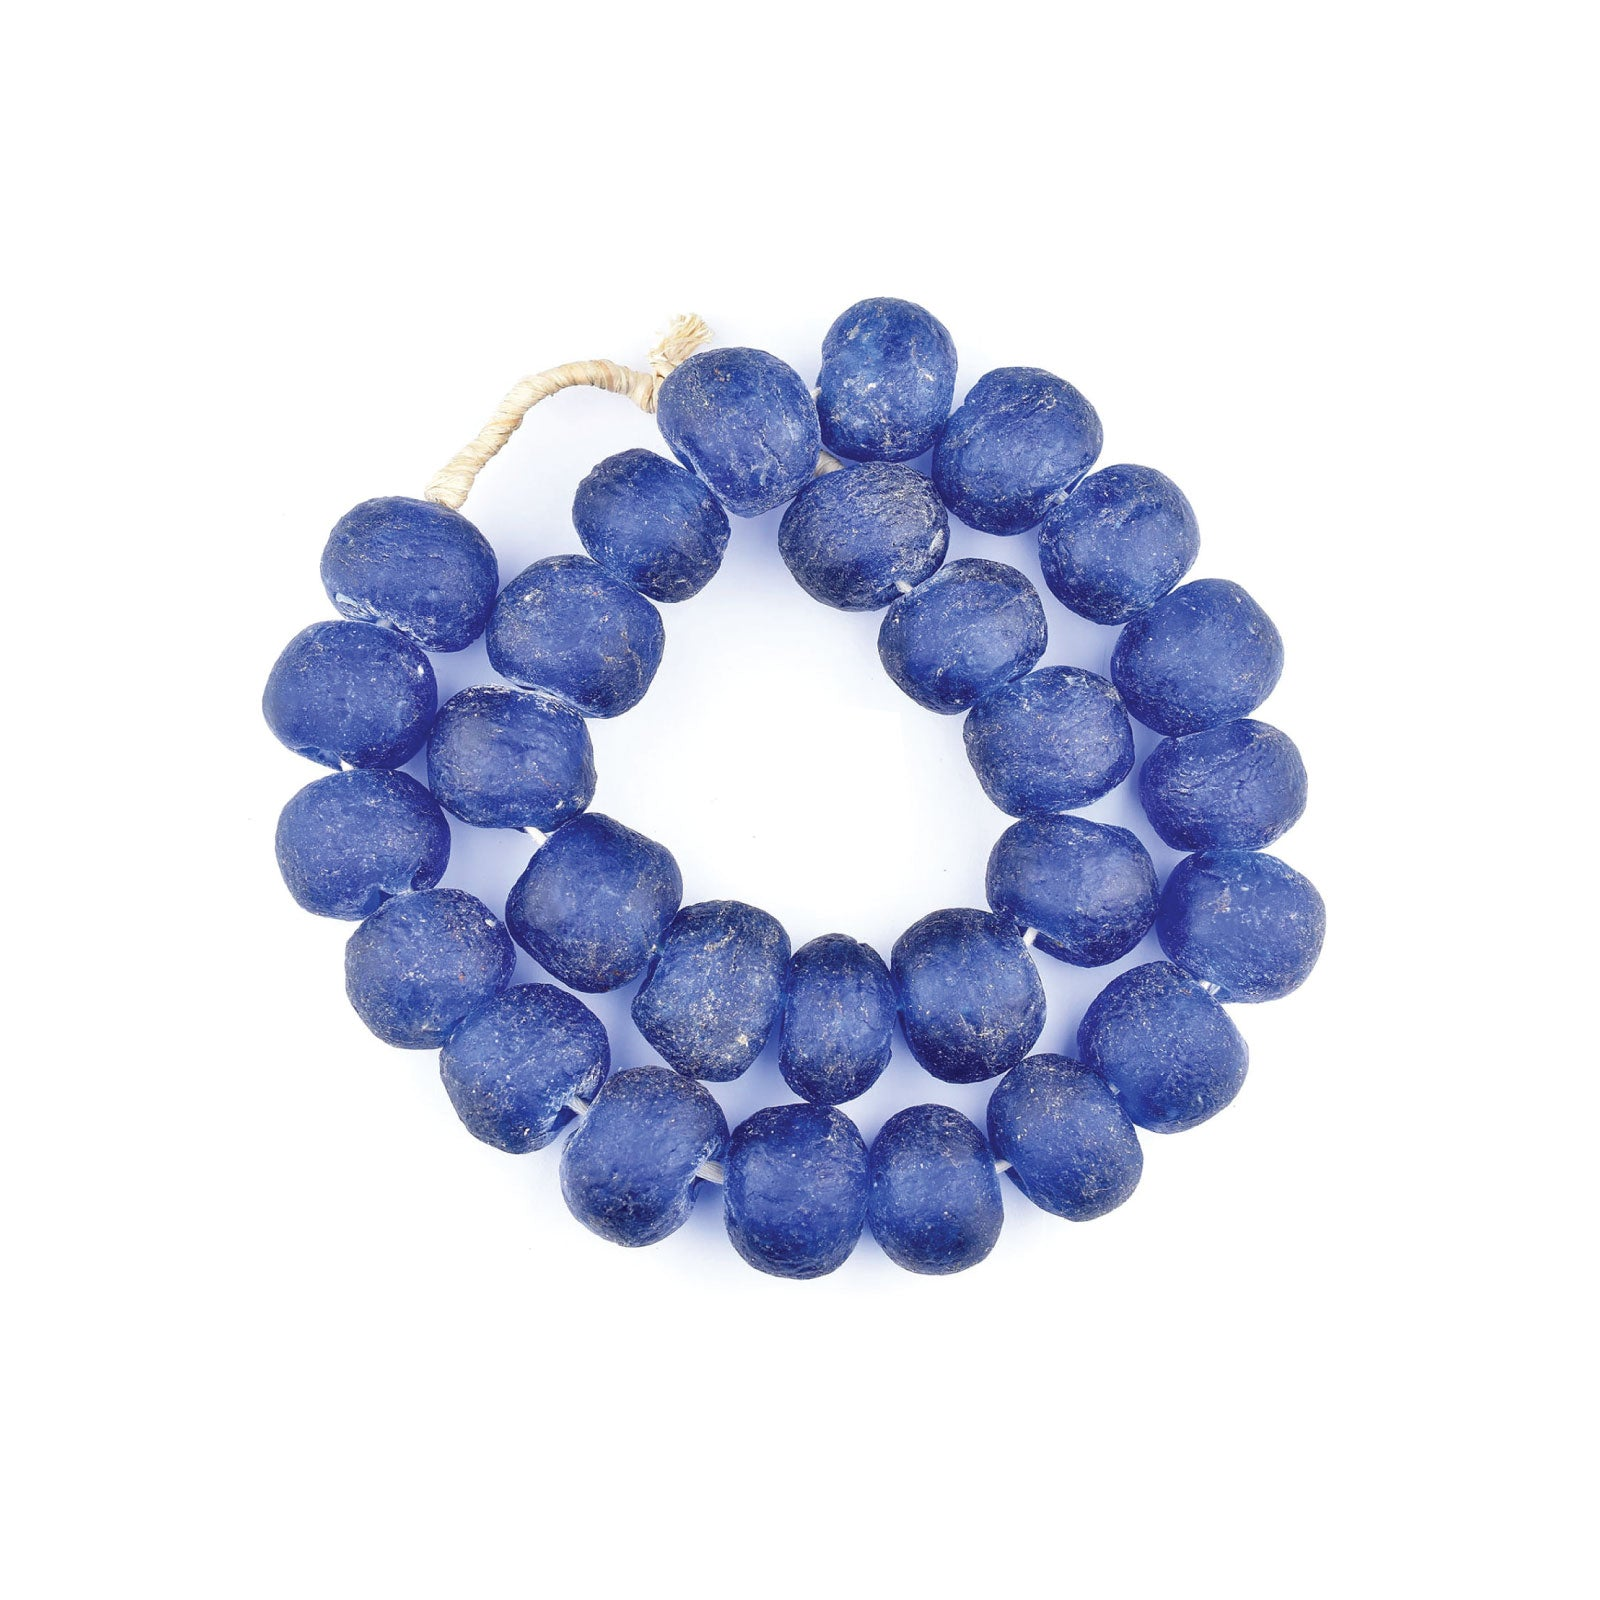 African Glass Beads in Blue